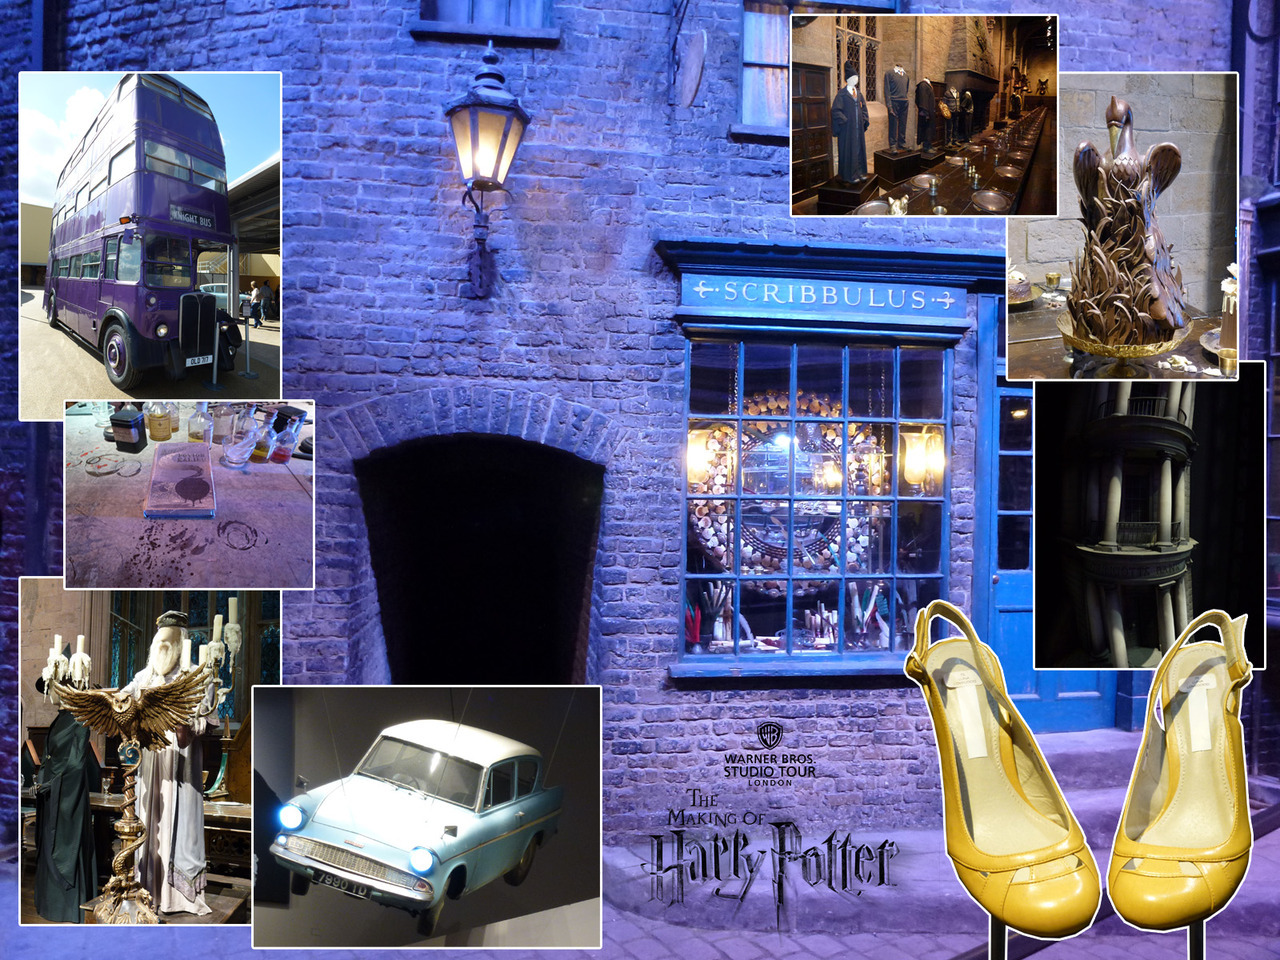 Photos from the Warner Bros Studio Tour - The Making of Harry Potter. Main: Walking through the Diagon Alley set. Clockwise from top left: The Knight Bus. The Great Hall walk-through set with Gryffindor costumes. A real chocolate phoenix (kept in storage for 7 years, but still edible!) Gringotts Bank exterior miniature. I found Luna Lovegood (Evanna Lynch)'s shoes. The Weasleys' Ford Anglia. Albus Dumbledore (Michael Gambon)'s costume and Great Hall owl lectern. Advanced Potion Making prop.